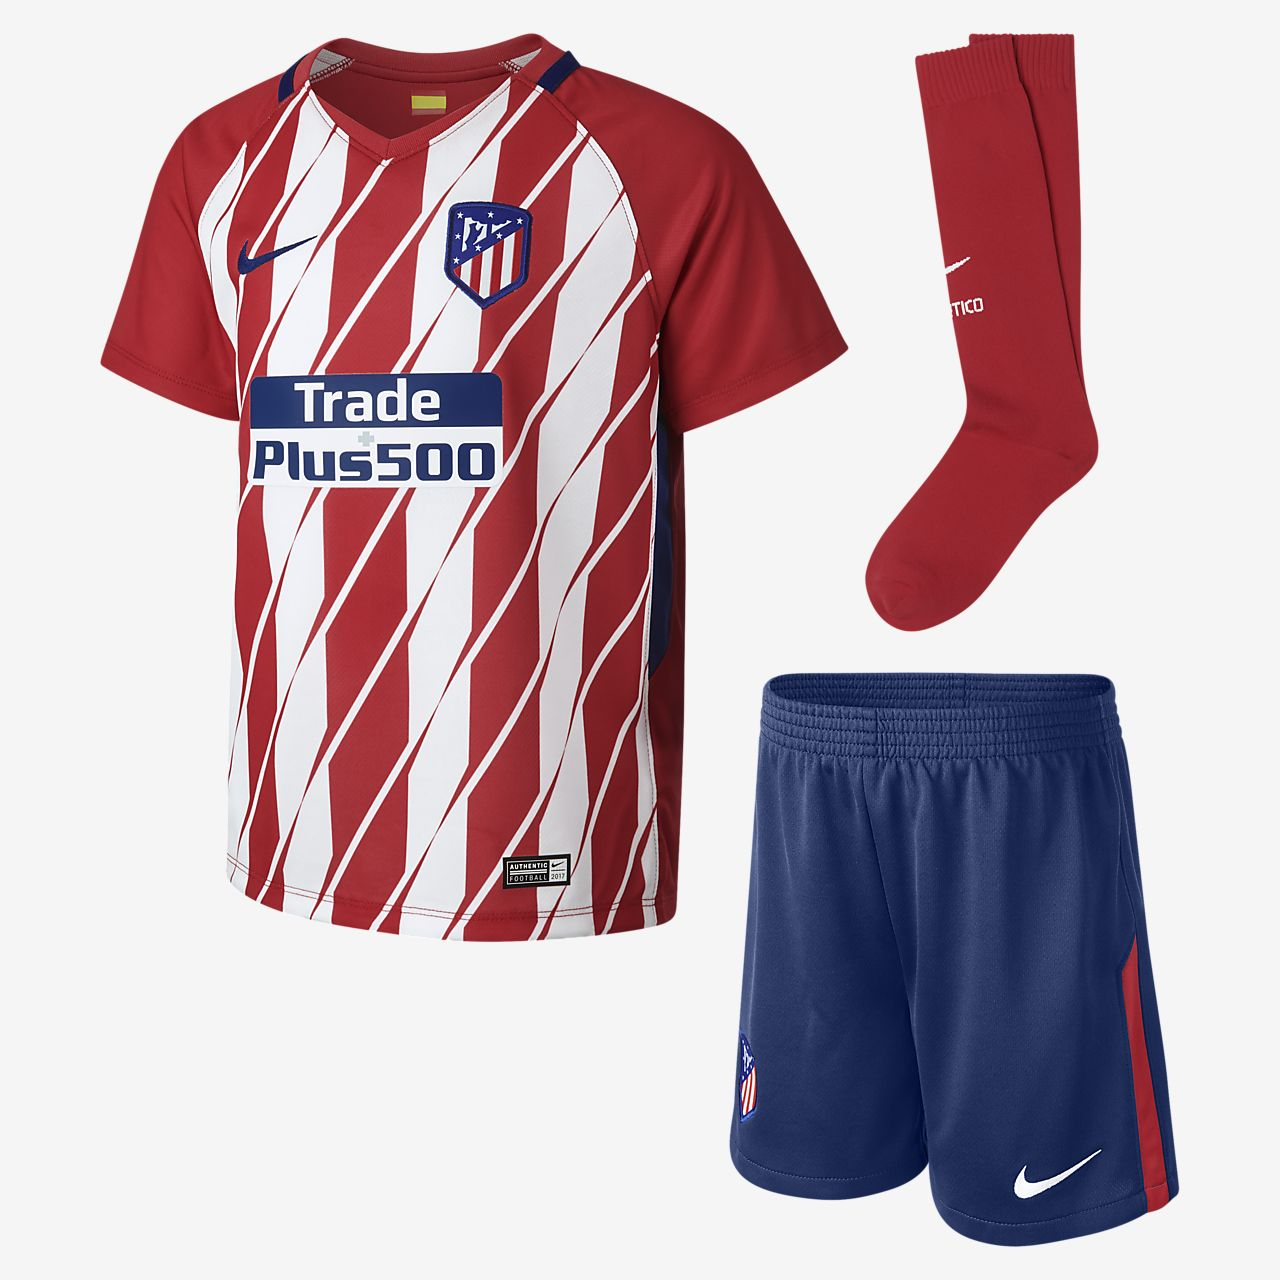 ... 2017/18 Atletico de Madrid Stadium Home Younger Kids' Football Kit